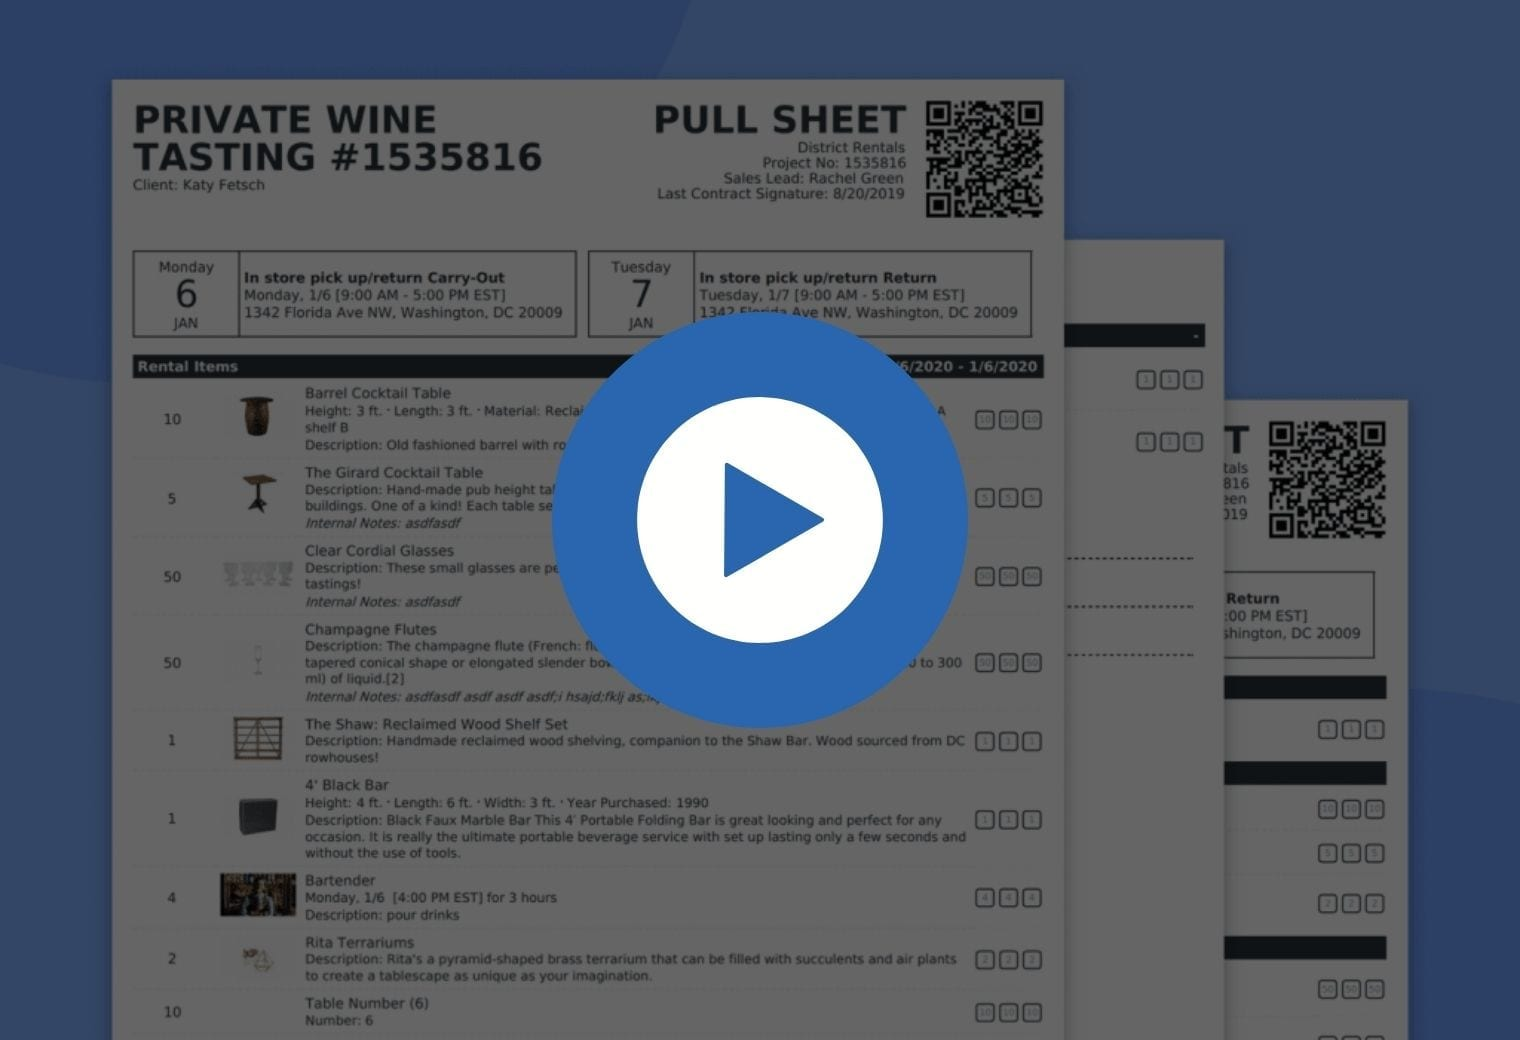 Automated pullsheet in Goodshuffle Pro, inventory management software